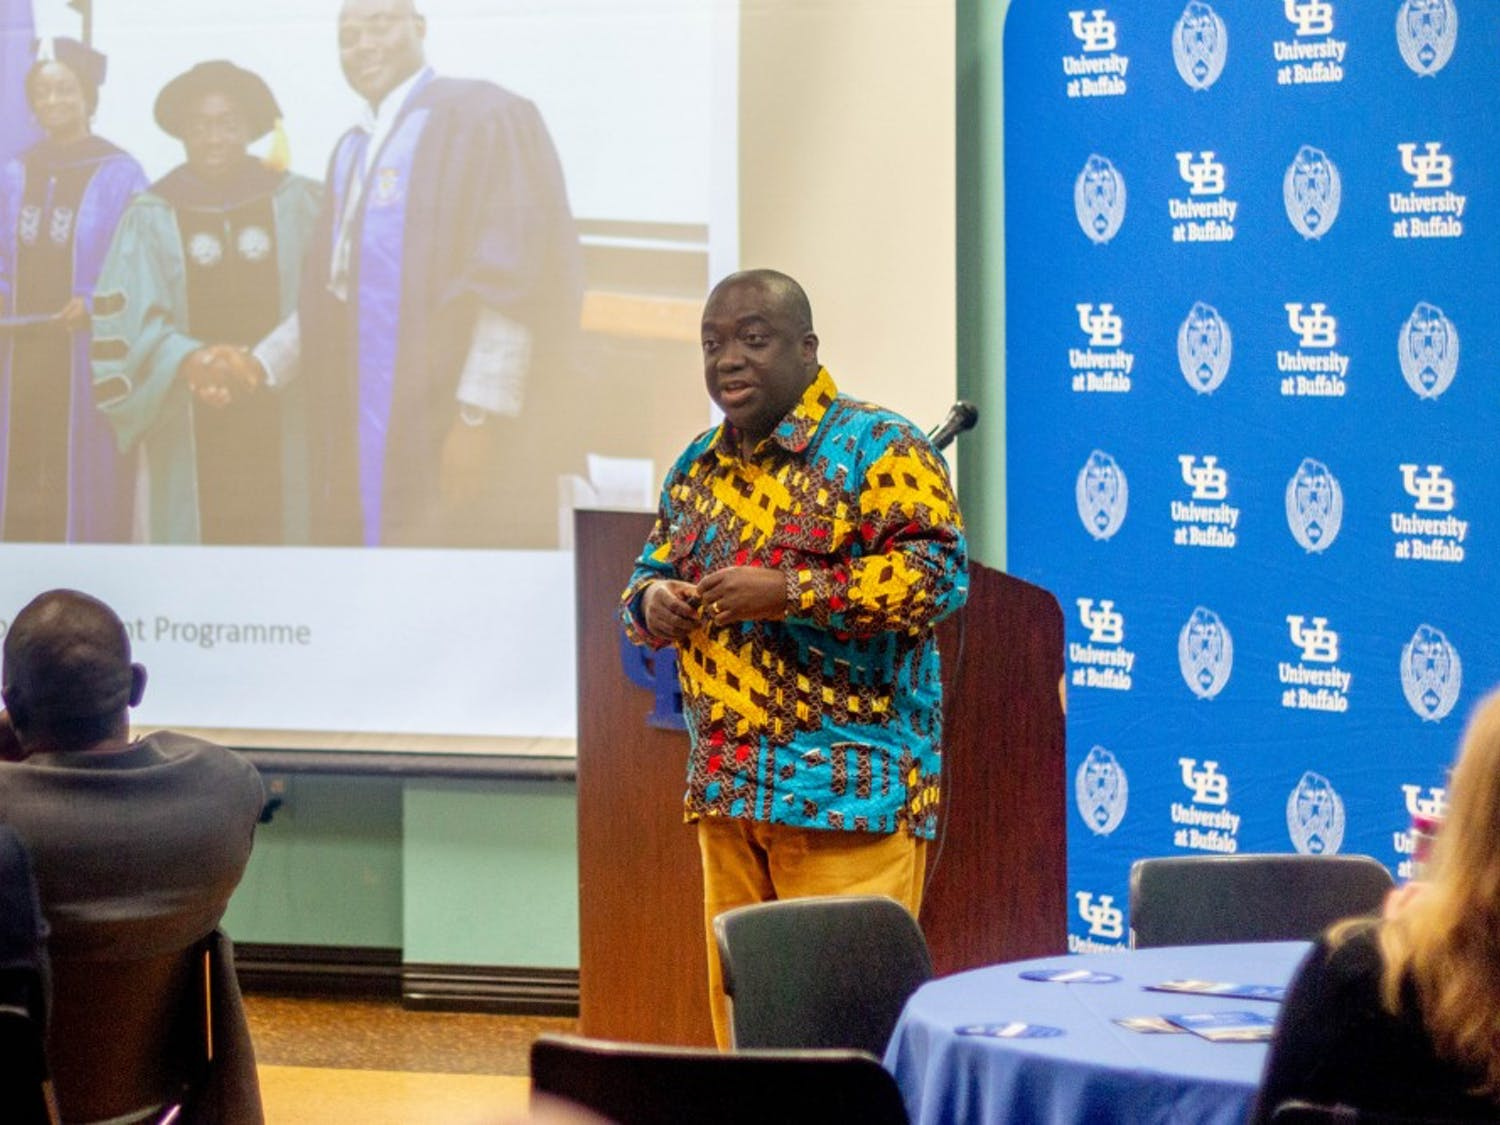 Michael Boakye-Yiadom, a research fellow at the Institute for Educational Planning and Administration at Ghana's University of Cape Coast, speaks during the inaugural Global Partner Studio institute.